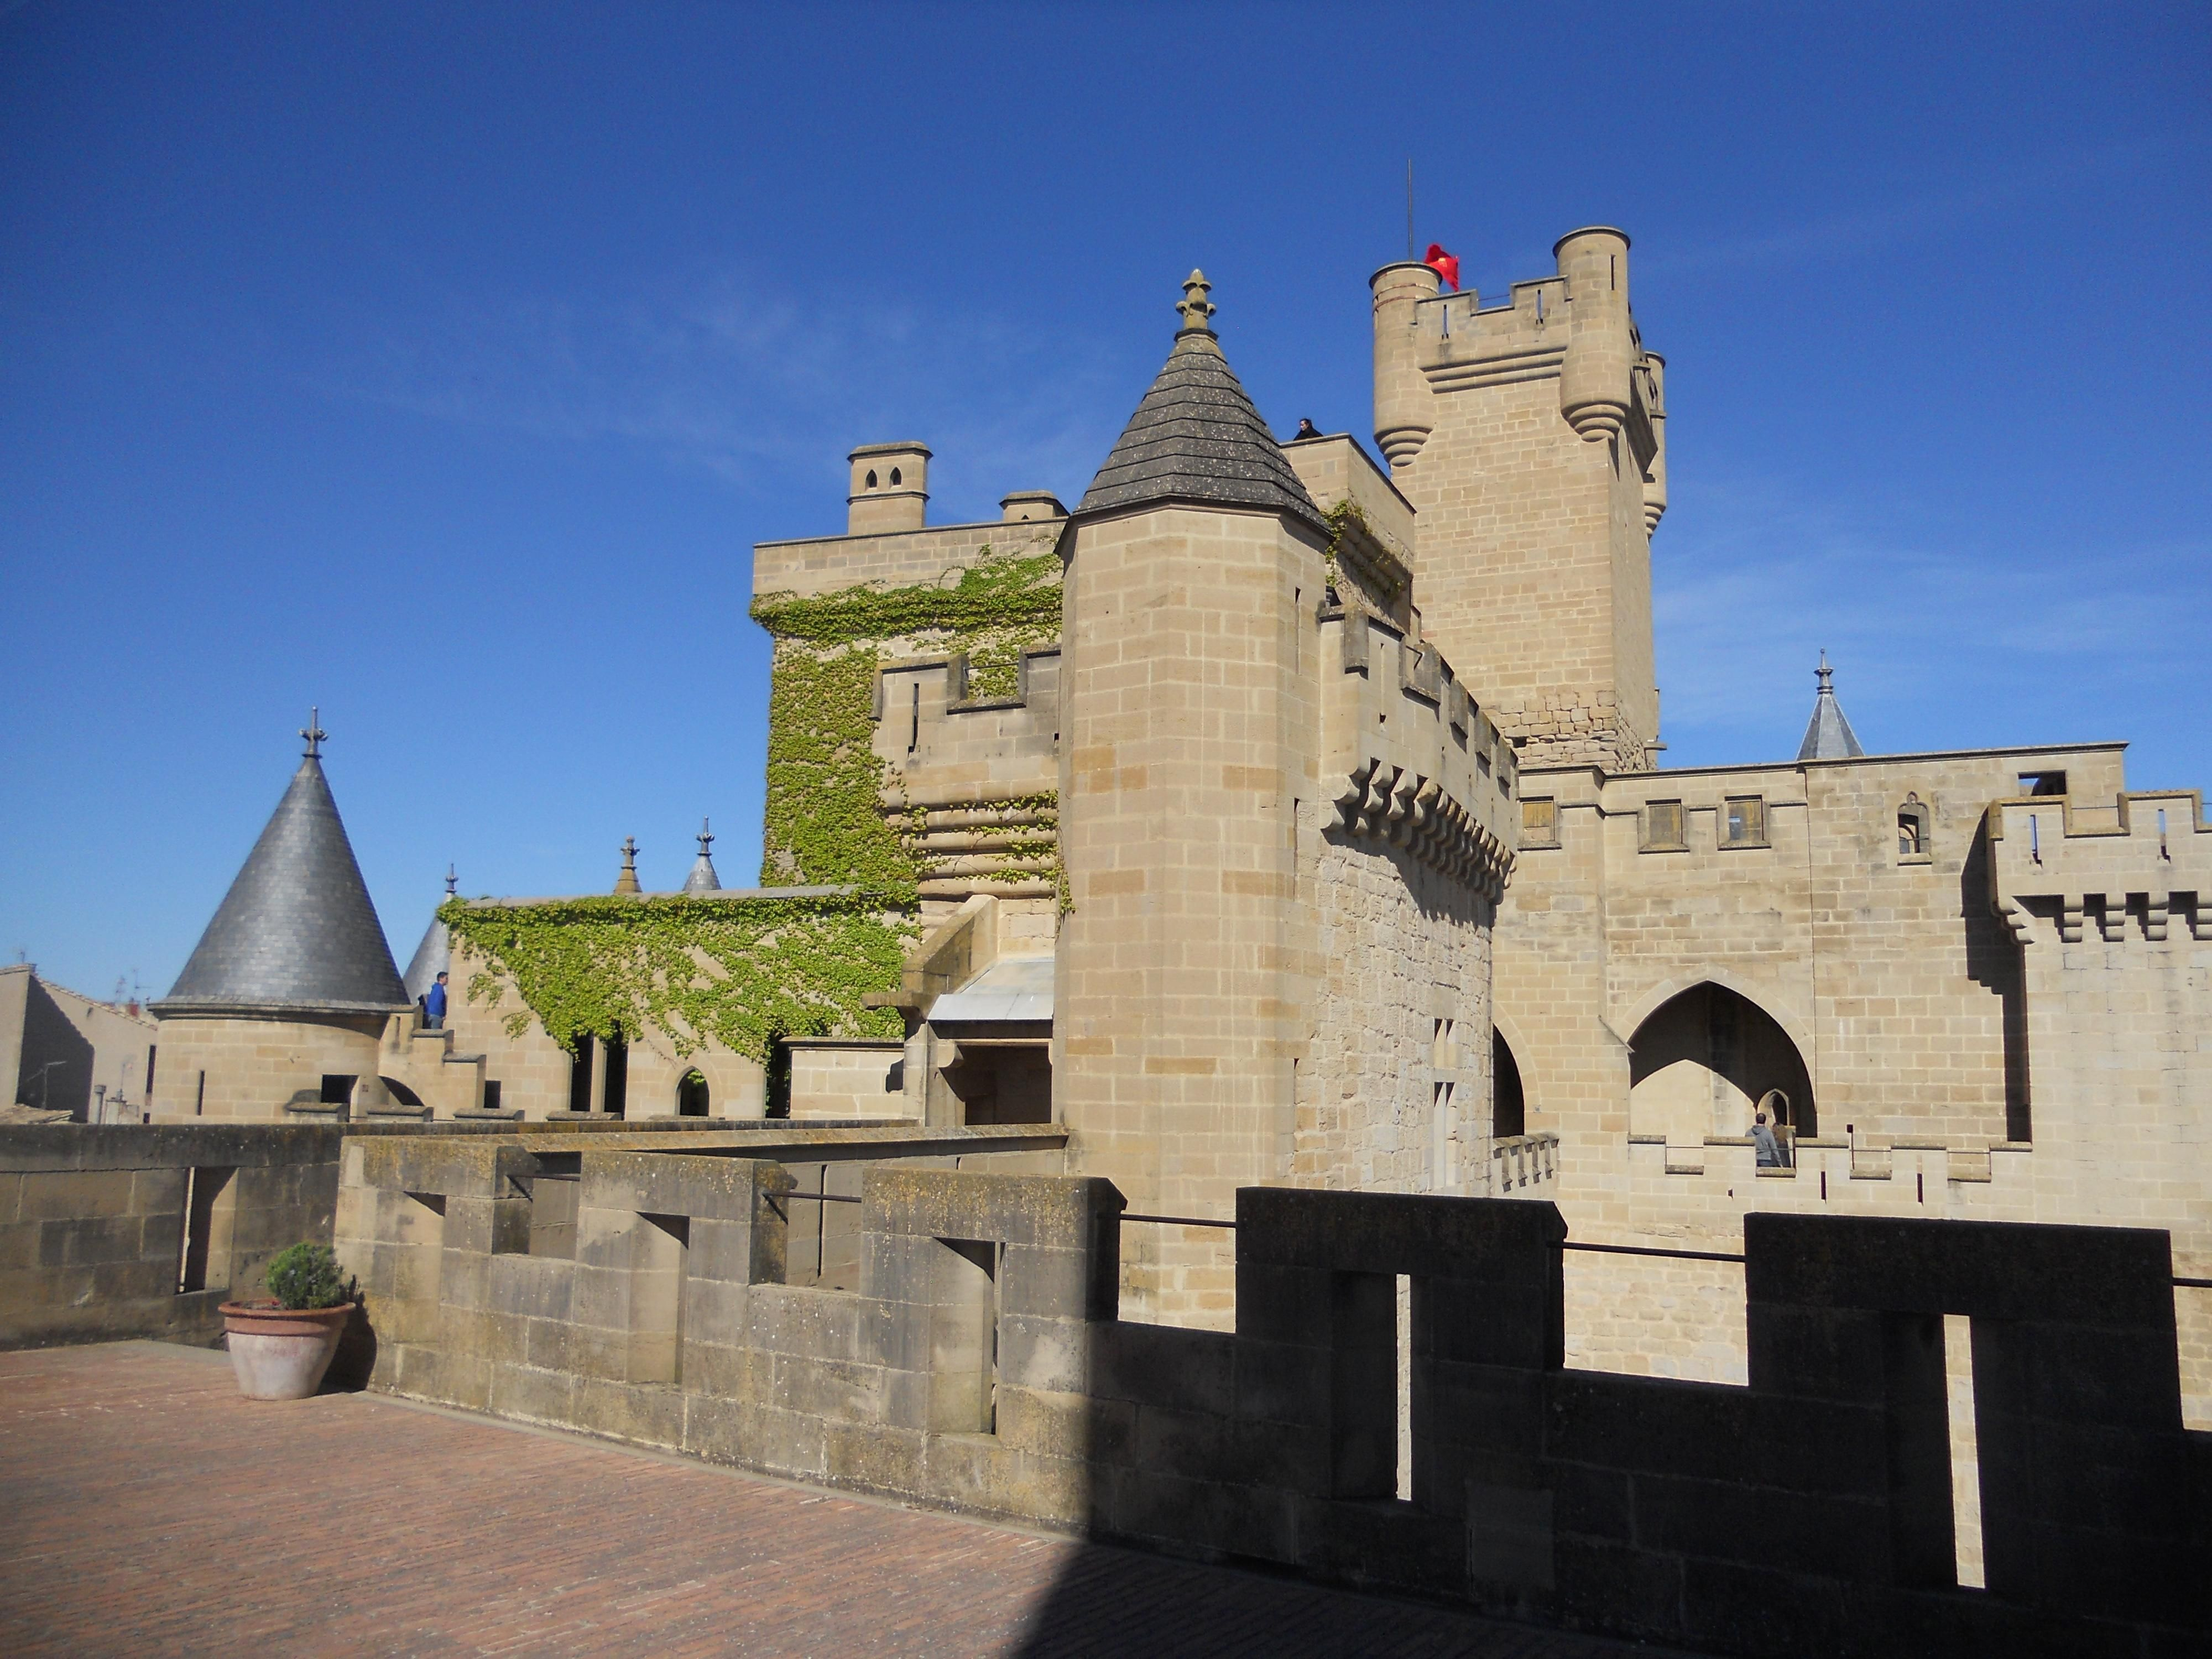 Olite Tourism: TripAdvisor has 3,658 reviews of Olite Hotels, Attractions, and Restaurants making it your best Olite resource.